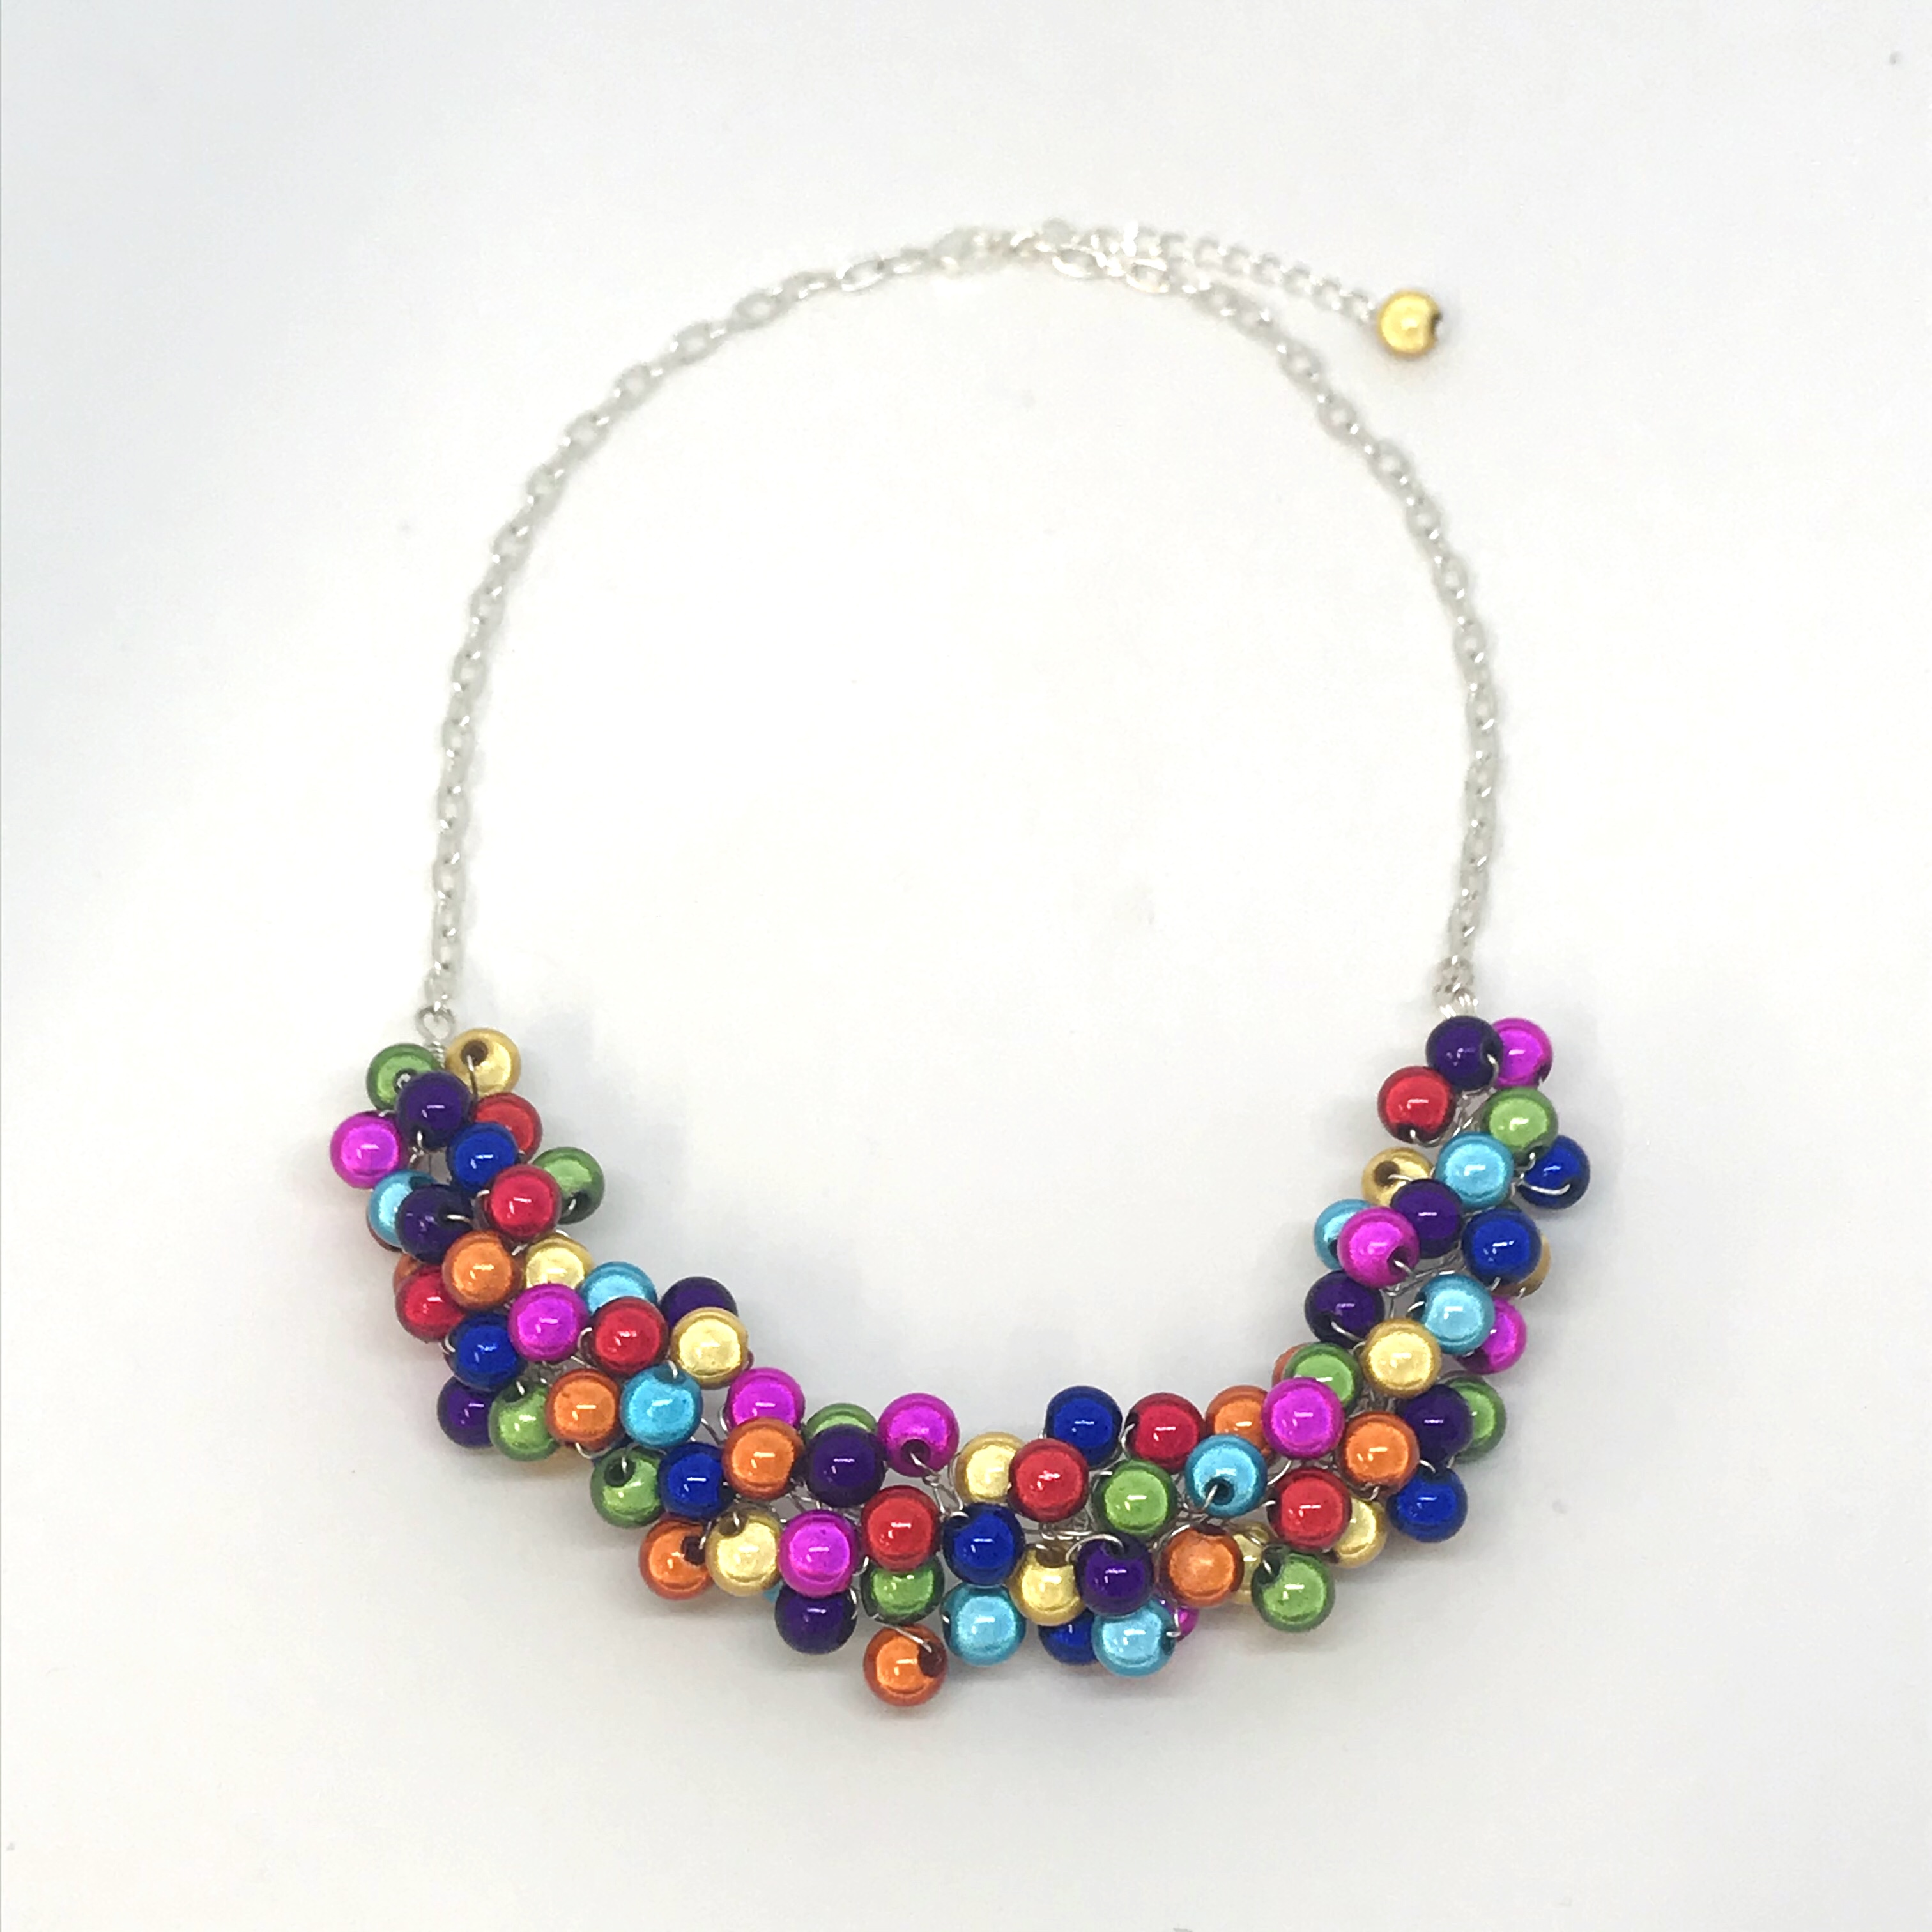 Thai Miracle Twisted Woven Necklace